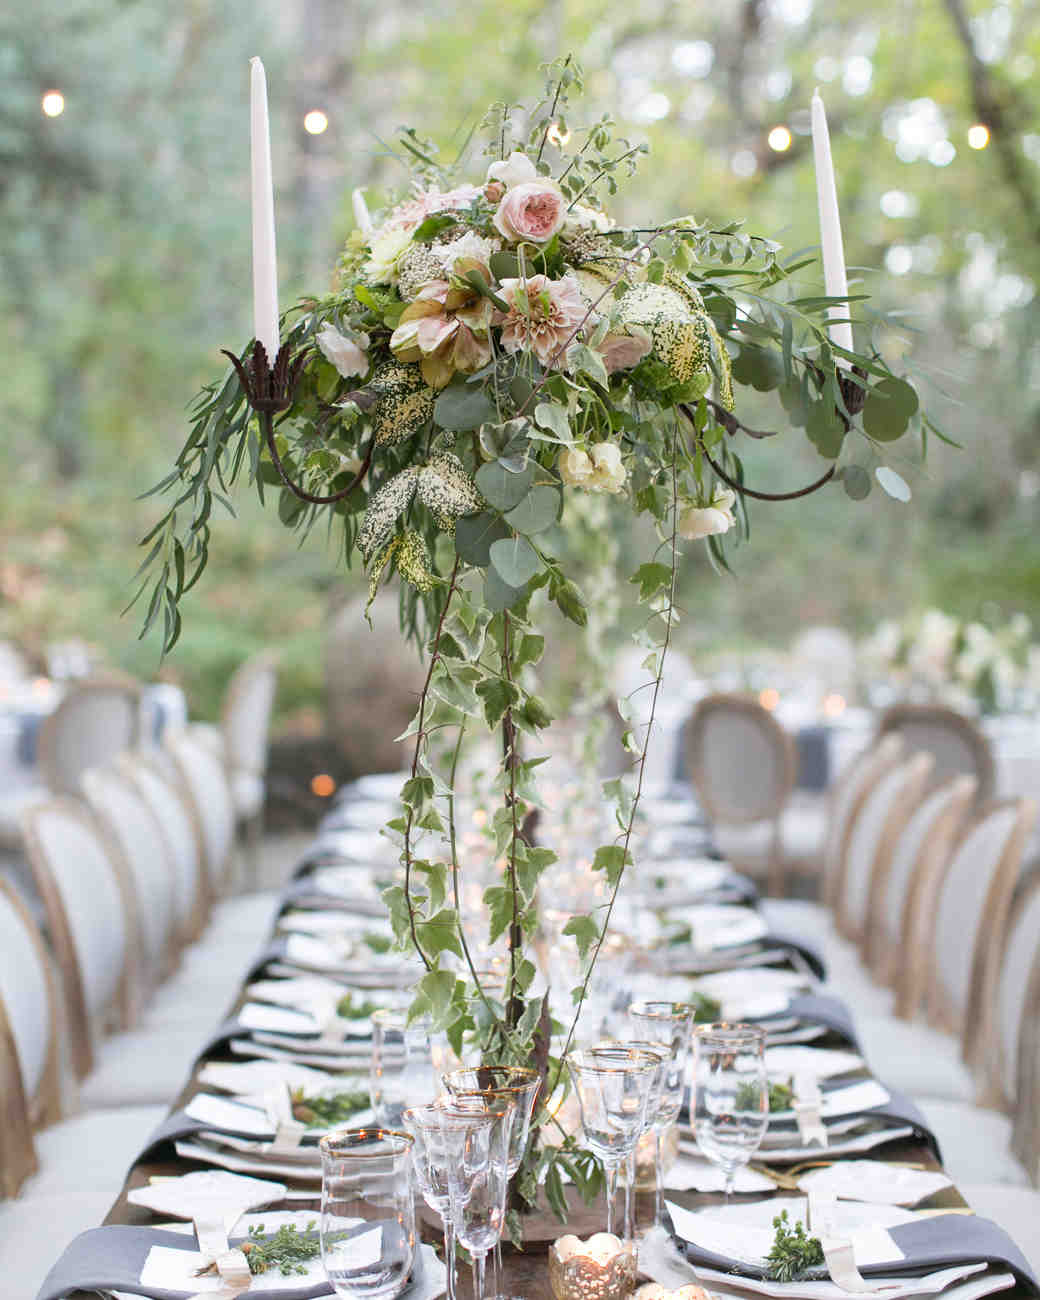 Wedding Flower Center Pieces: 75 Great Wedding Centerpieces